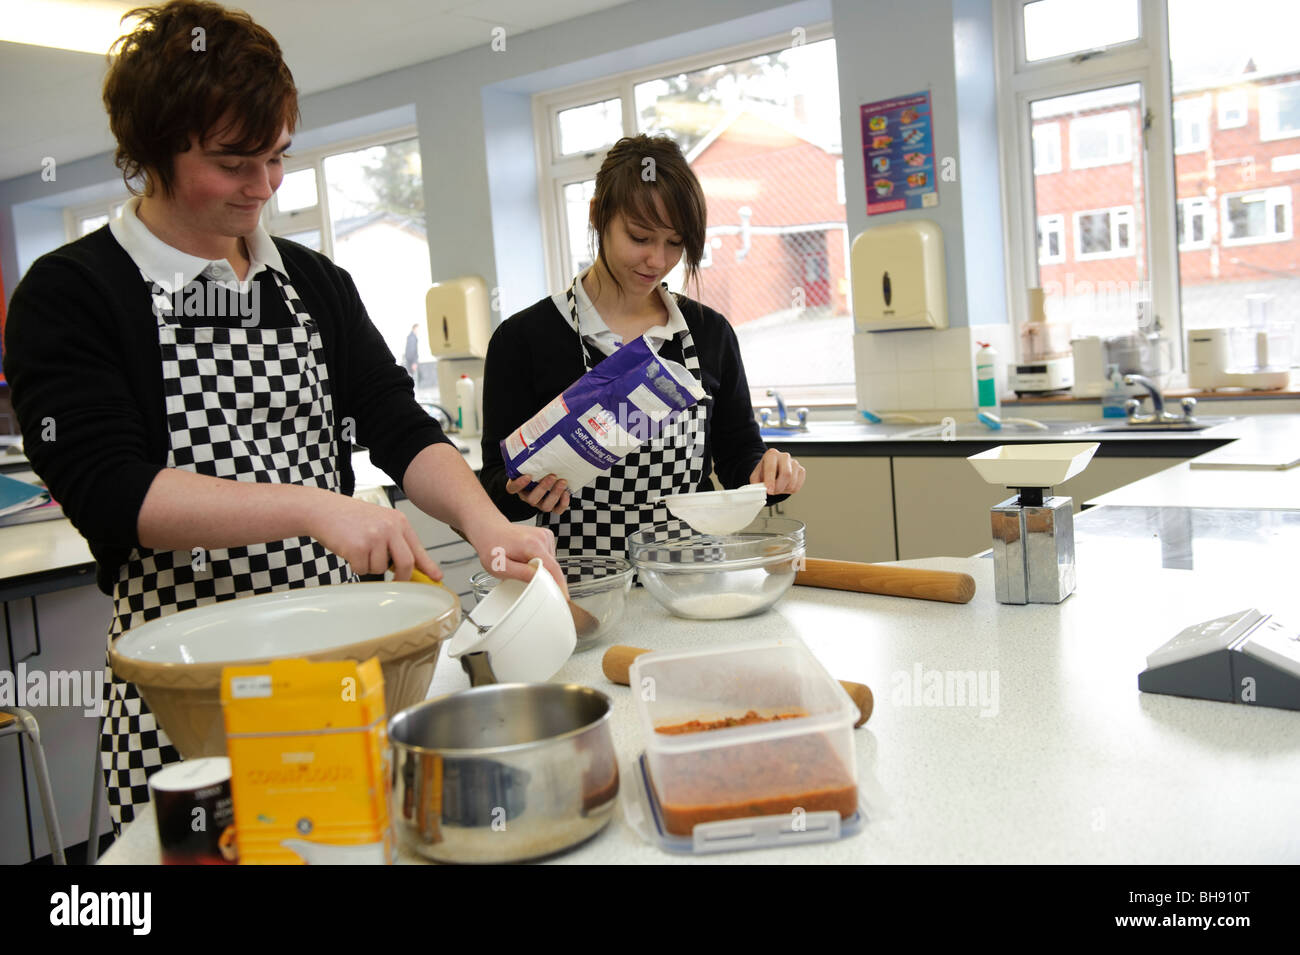 Two teenagers pupils - boy and girl measuring ingredients in food science cookery class , secondary school UK - Stock Image